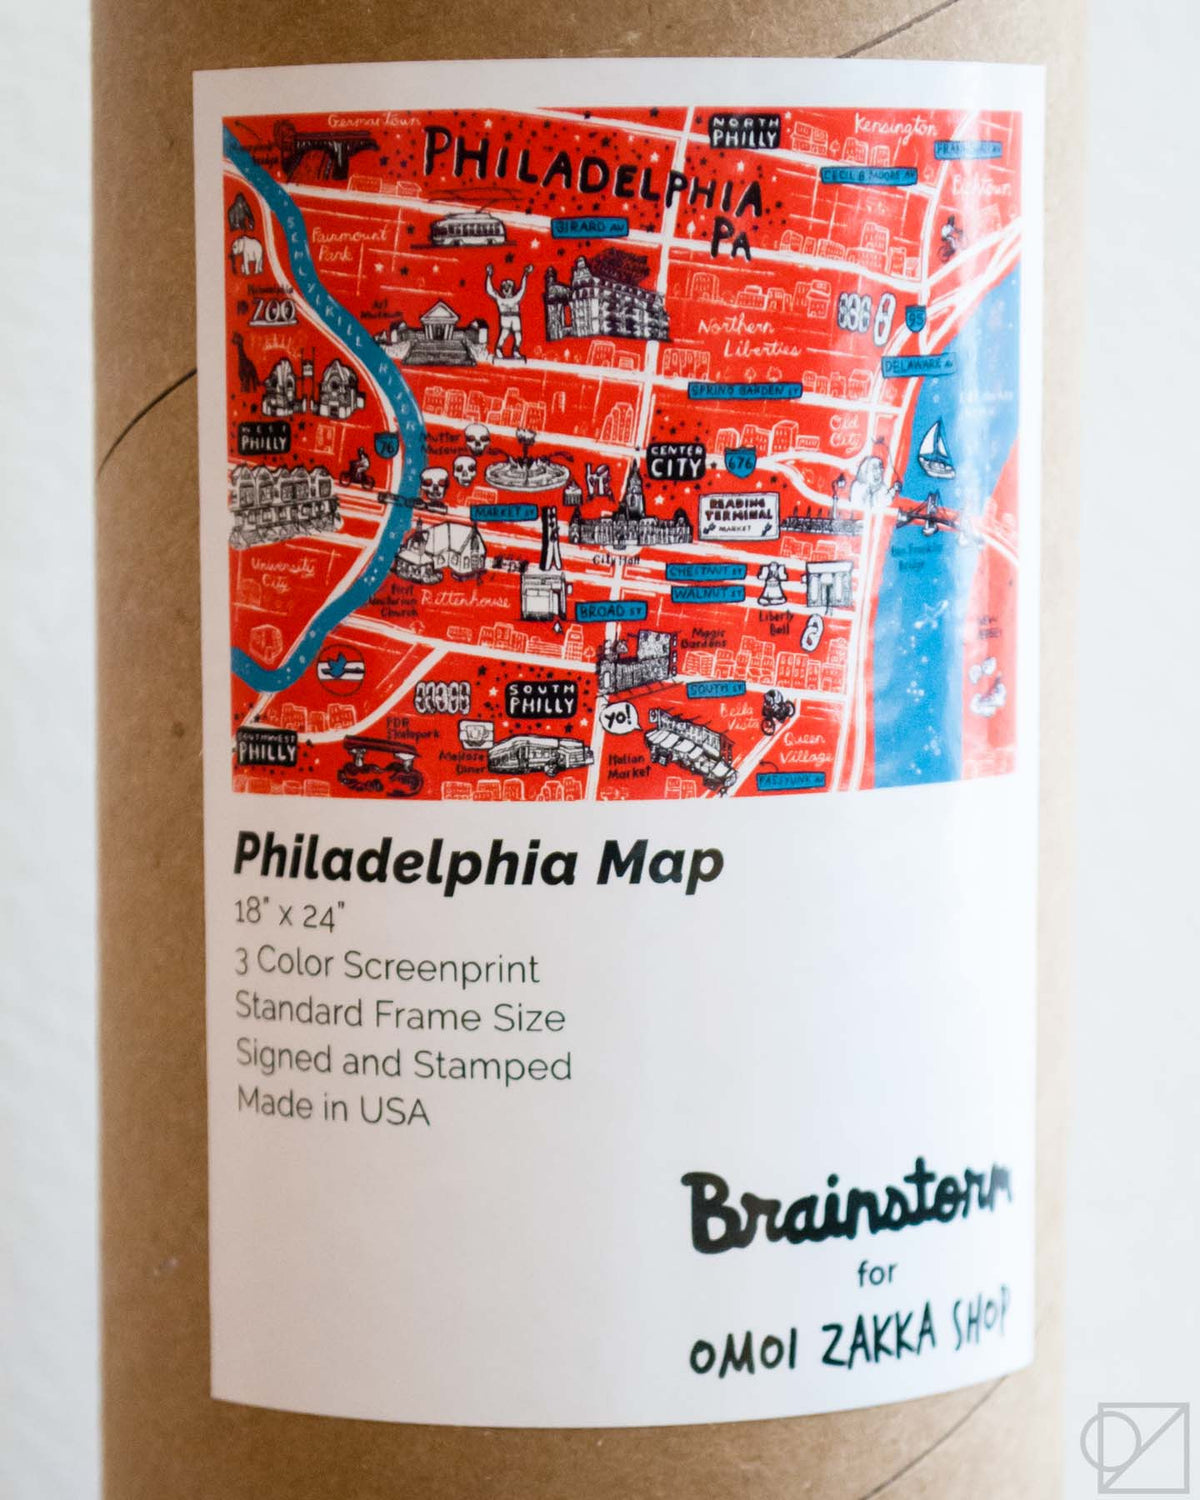 Brainstorm x Omoi Zakka Shop Philadelphia Map comes in this easy to ship and store tube